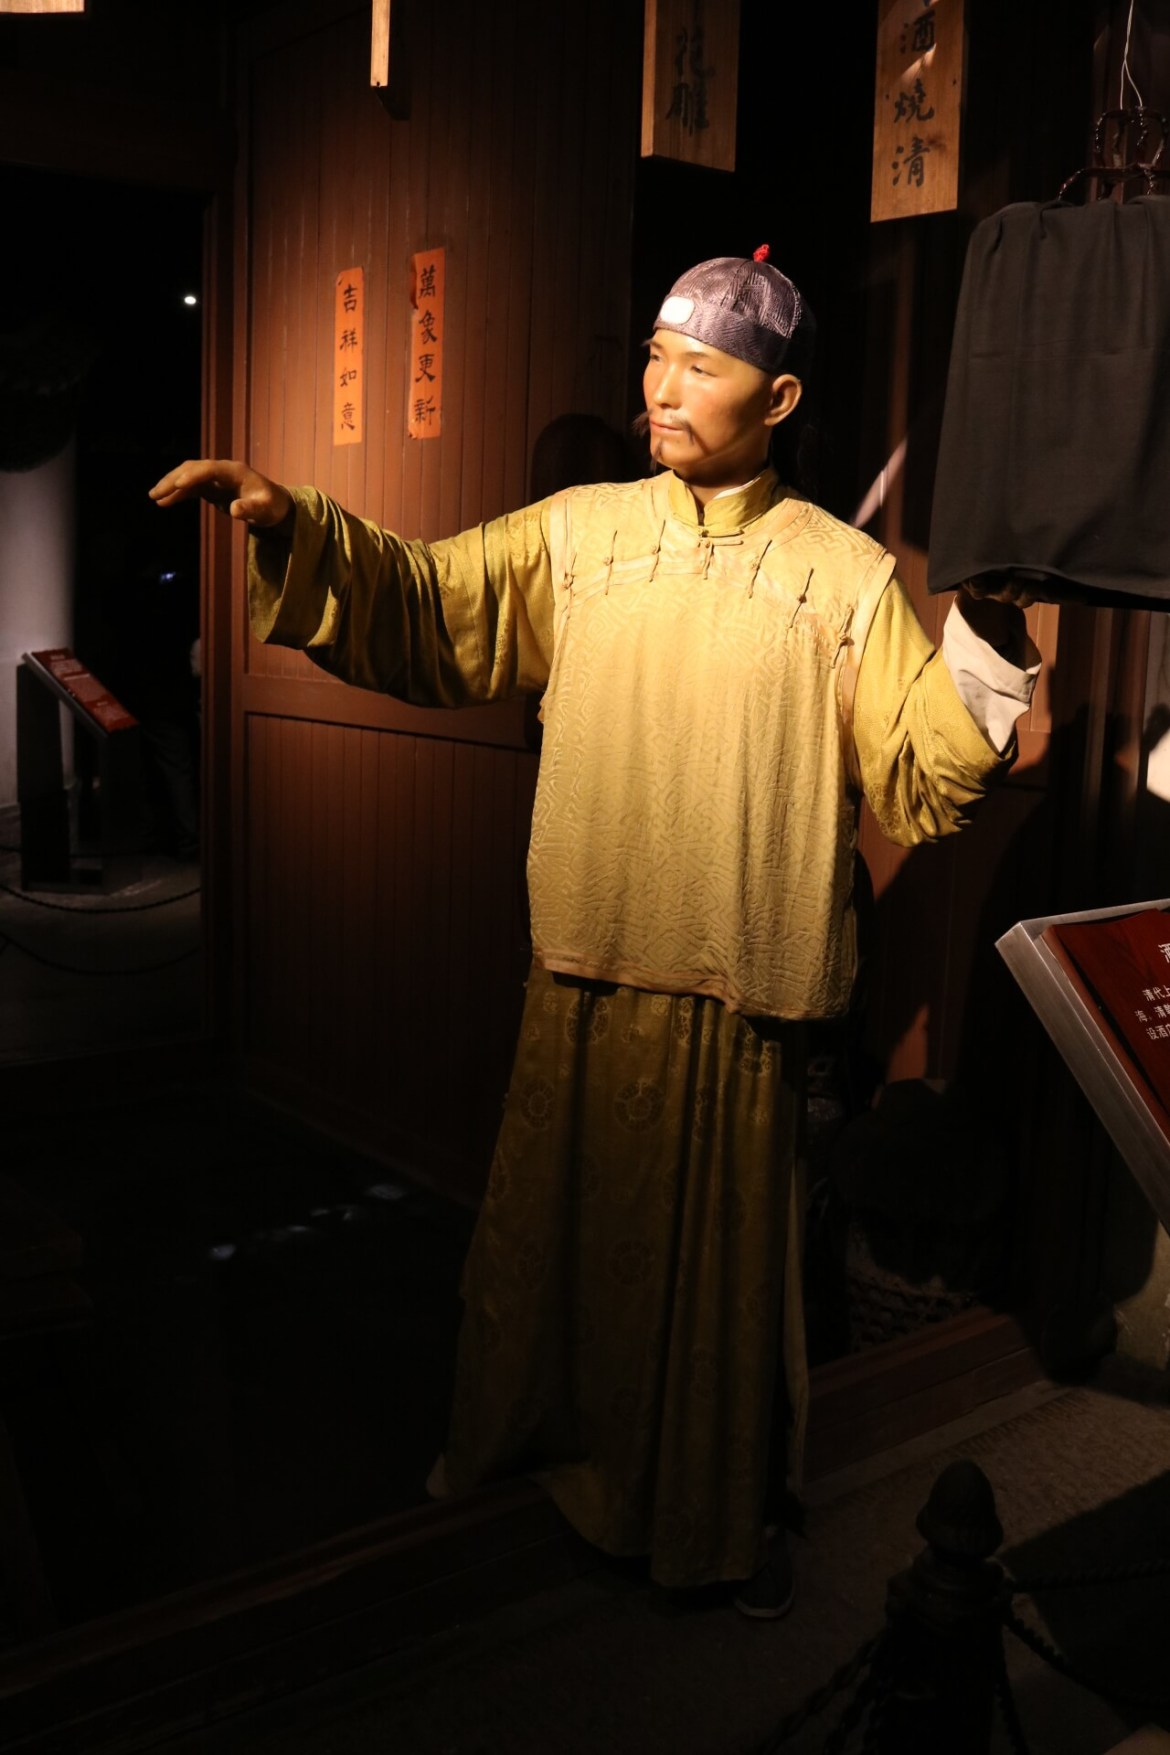 Wax Figure at Shanghai History Museum